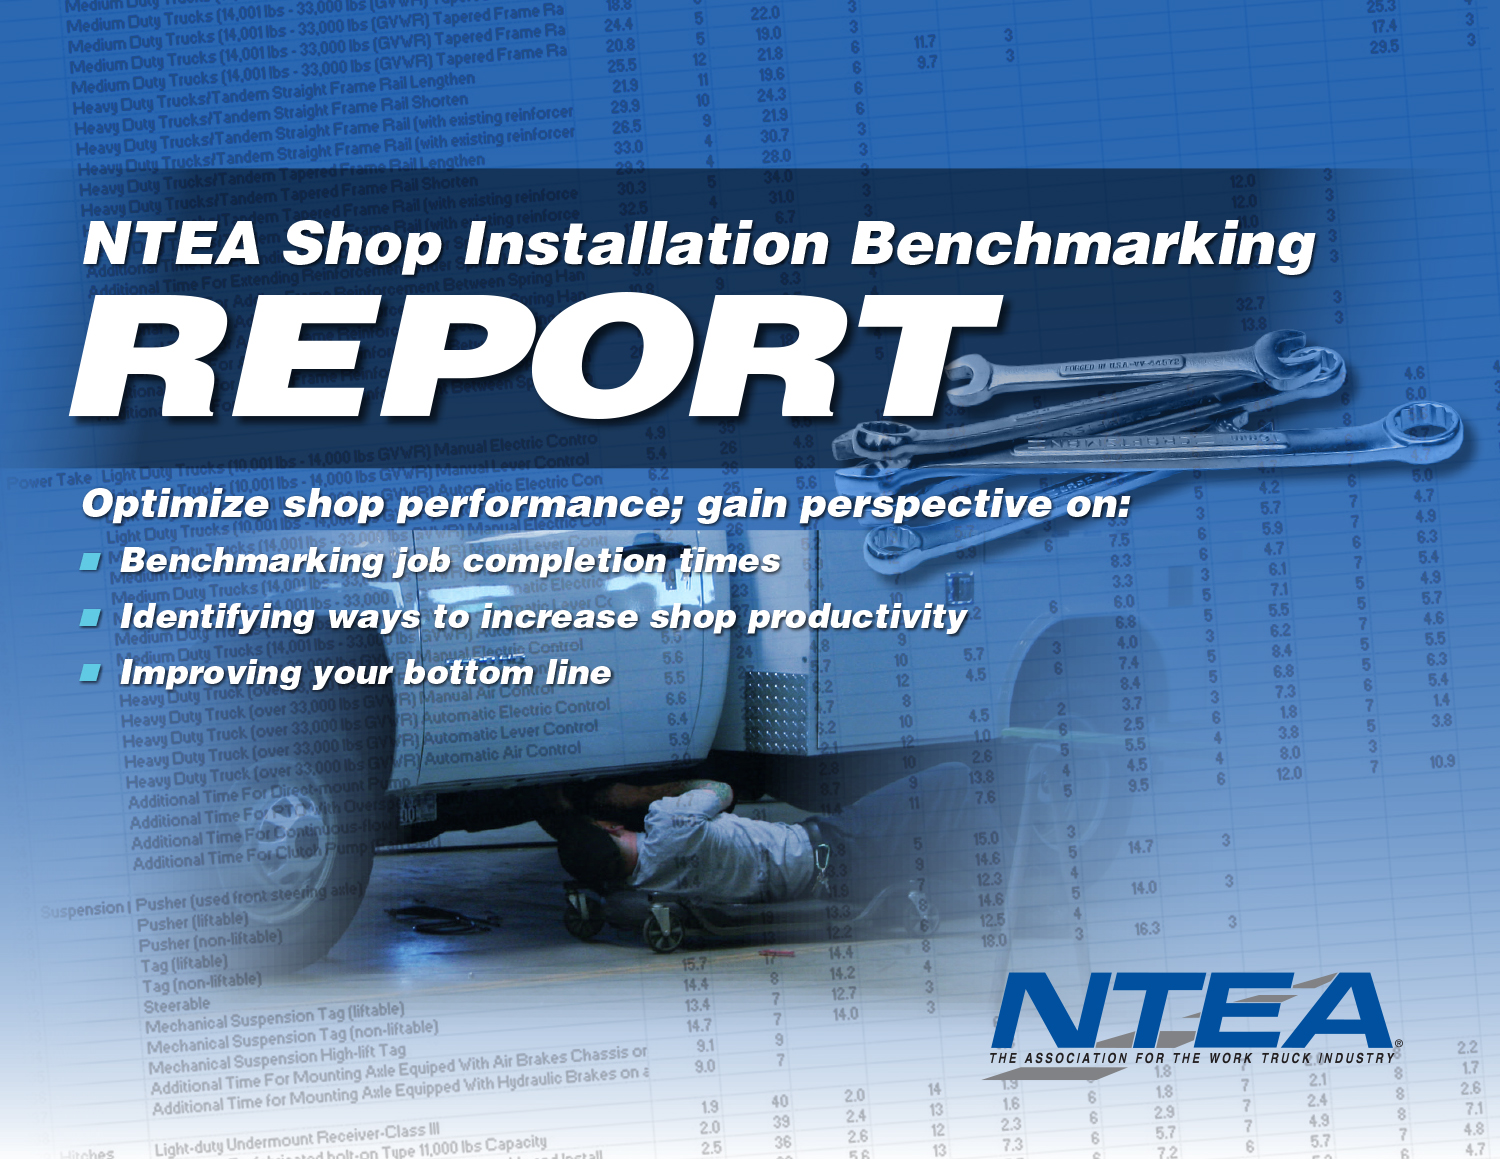 Shop Installation Benchmarking Report